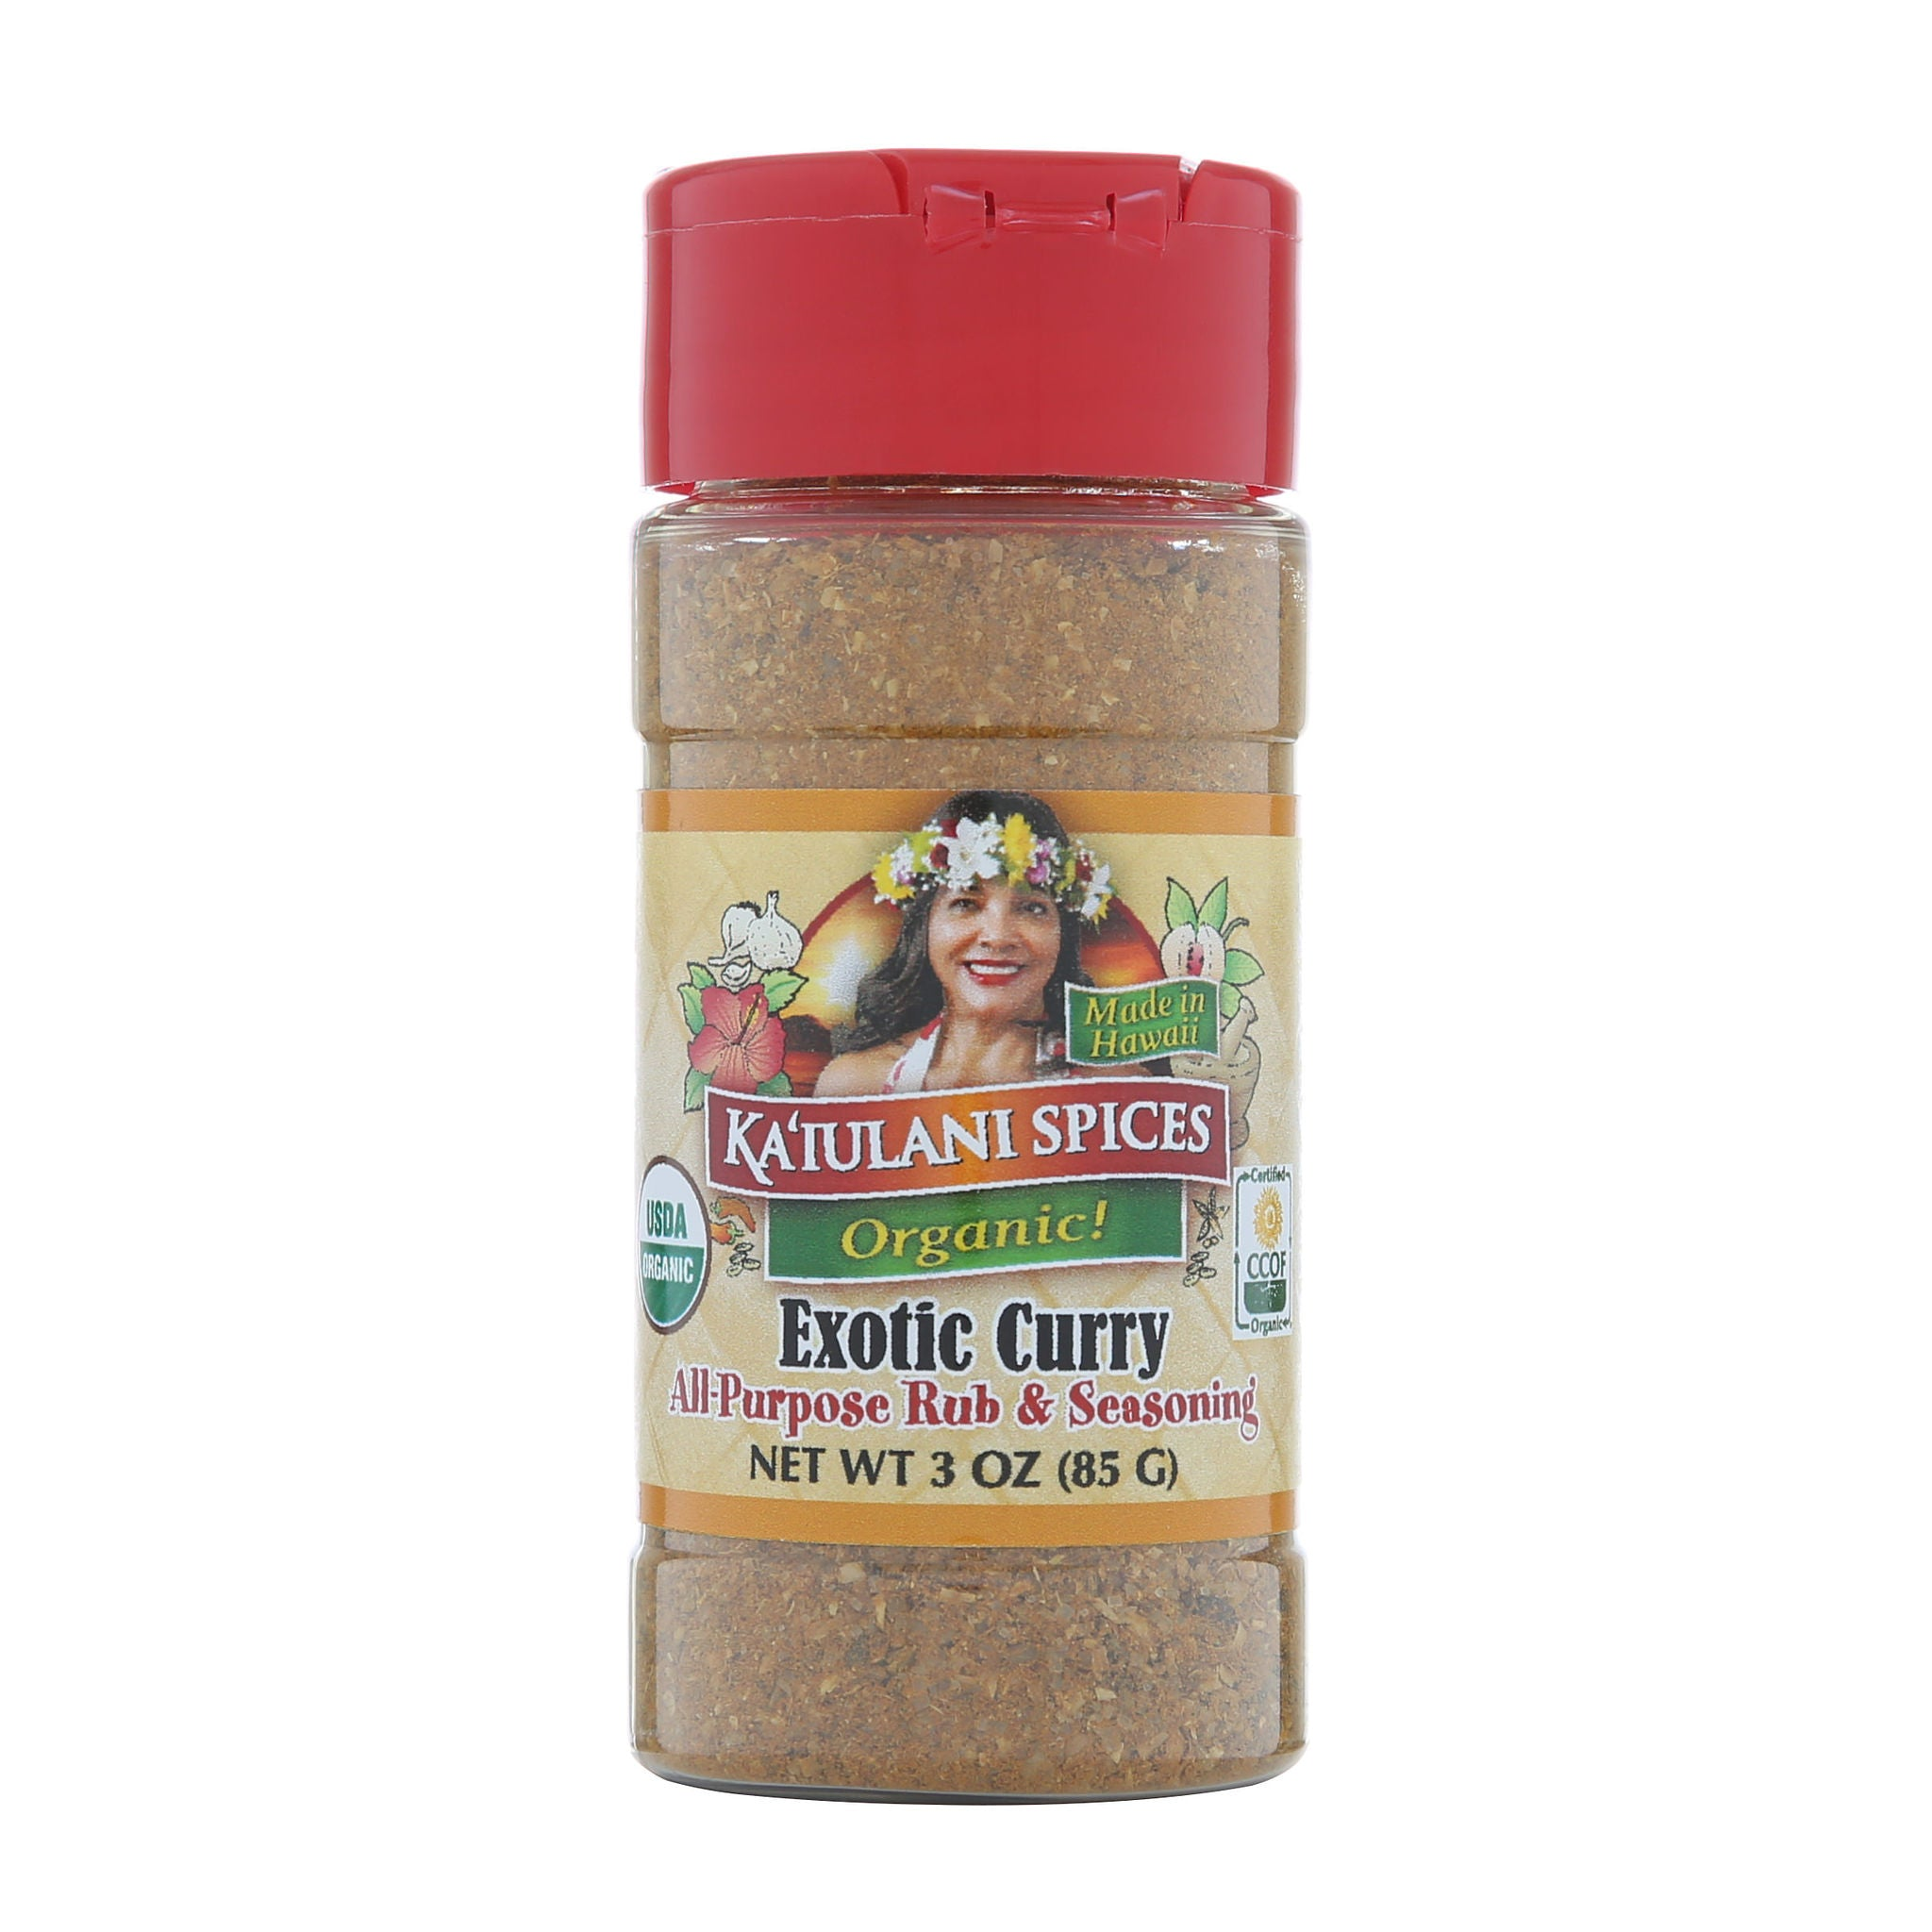 Kaiulani Spices Exotic Curry